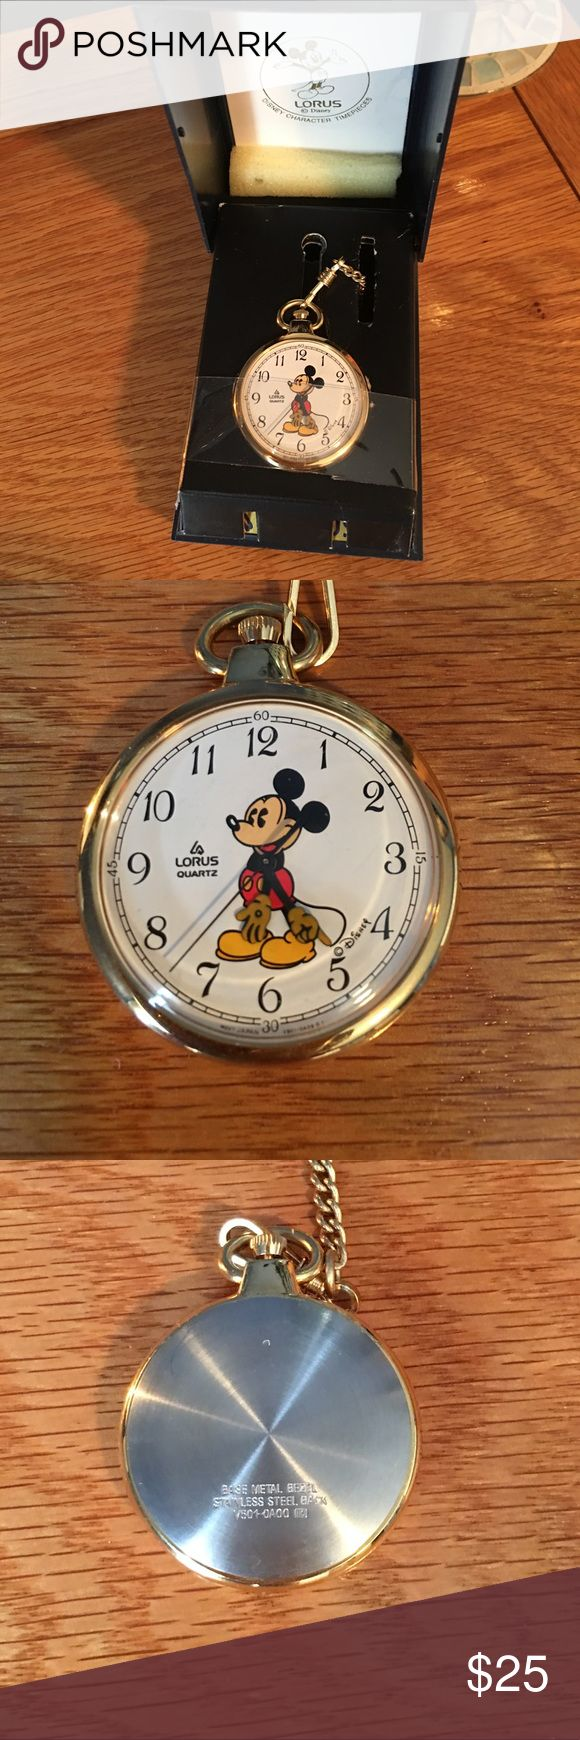 Mickey Mouse pocket watch Vintage Mickey Mouse pocket-watch.  Purchased probably 25 yrs ago.  I honestly don't remember ever wearing.  New battery installed.  Pristine condition. lorus Jewelry